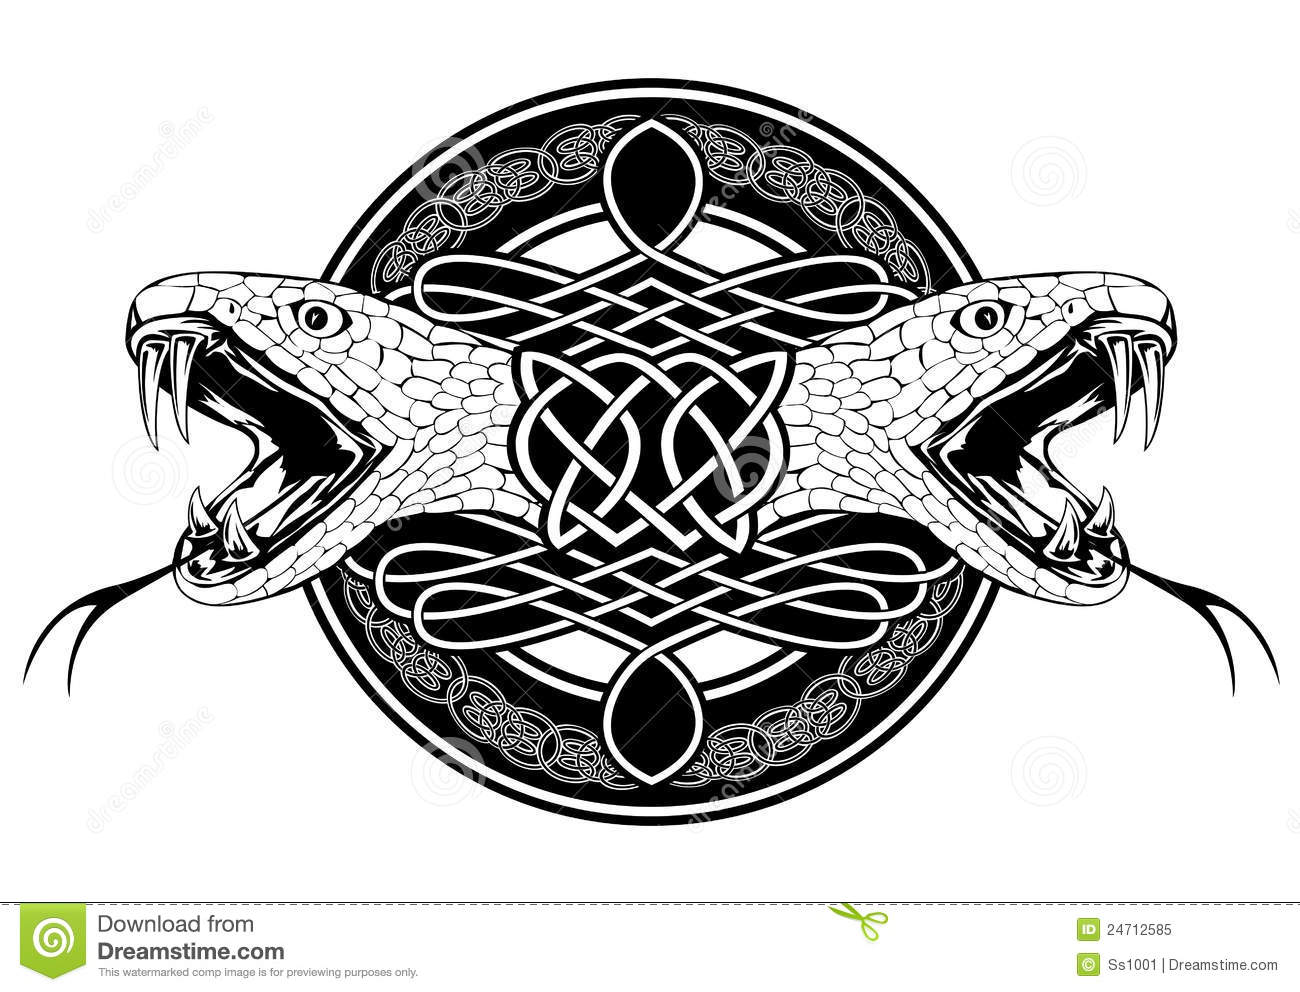 Snake and celtic patterns royalty free stock photo image 24712585